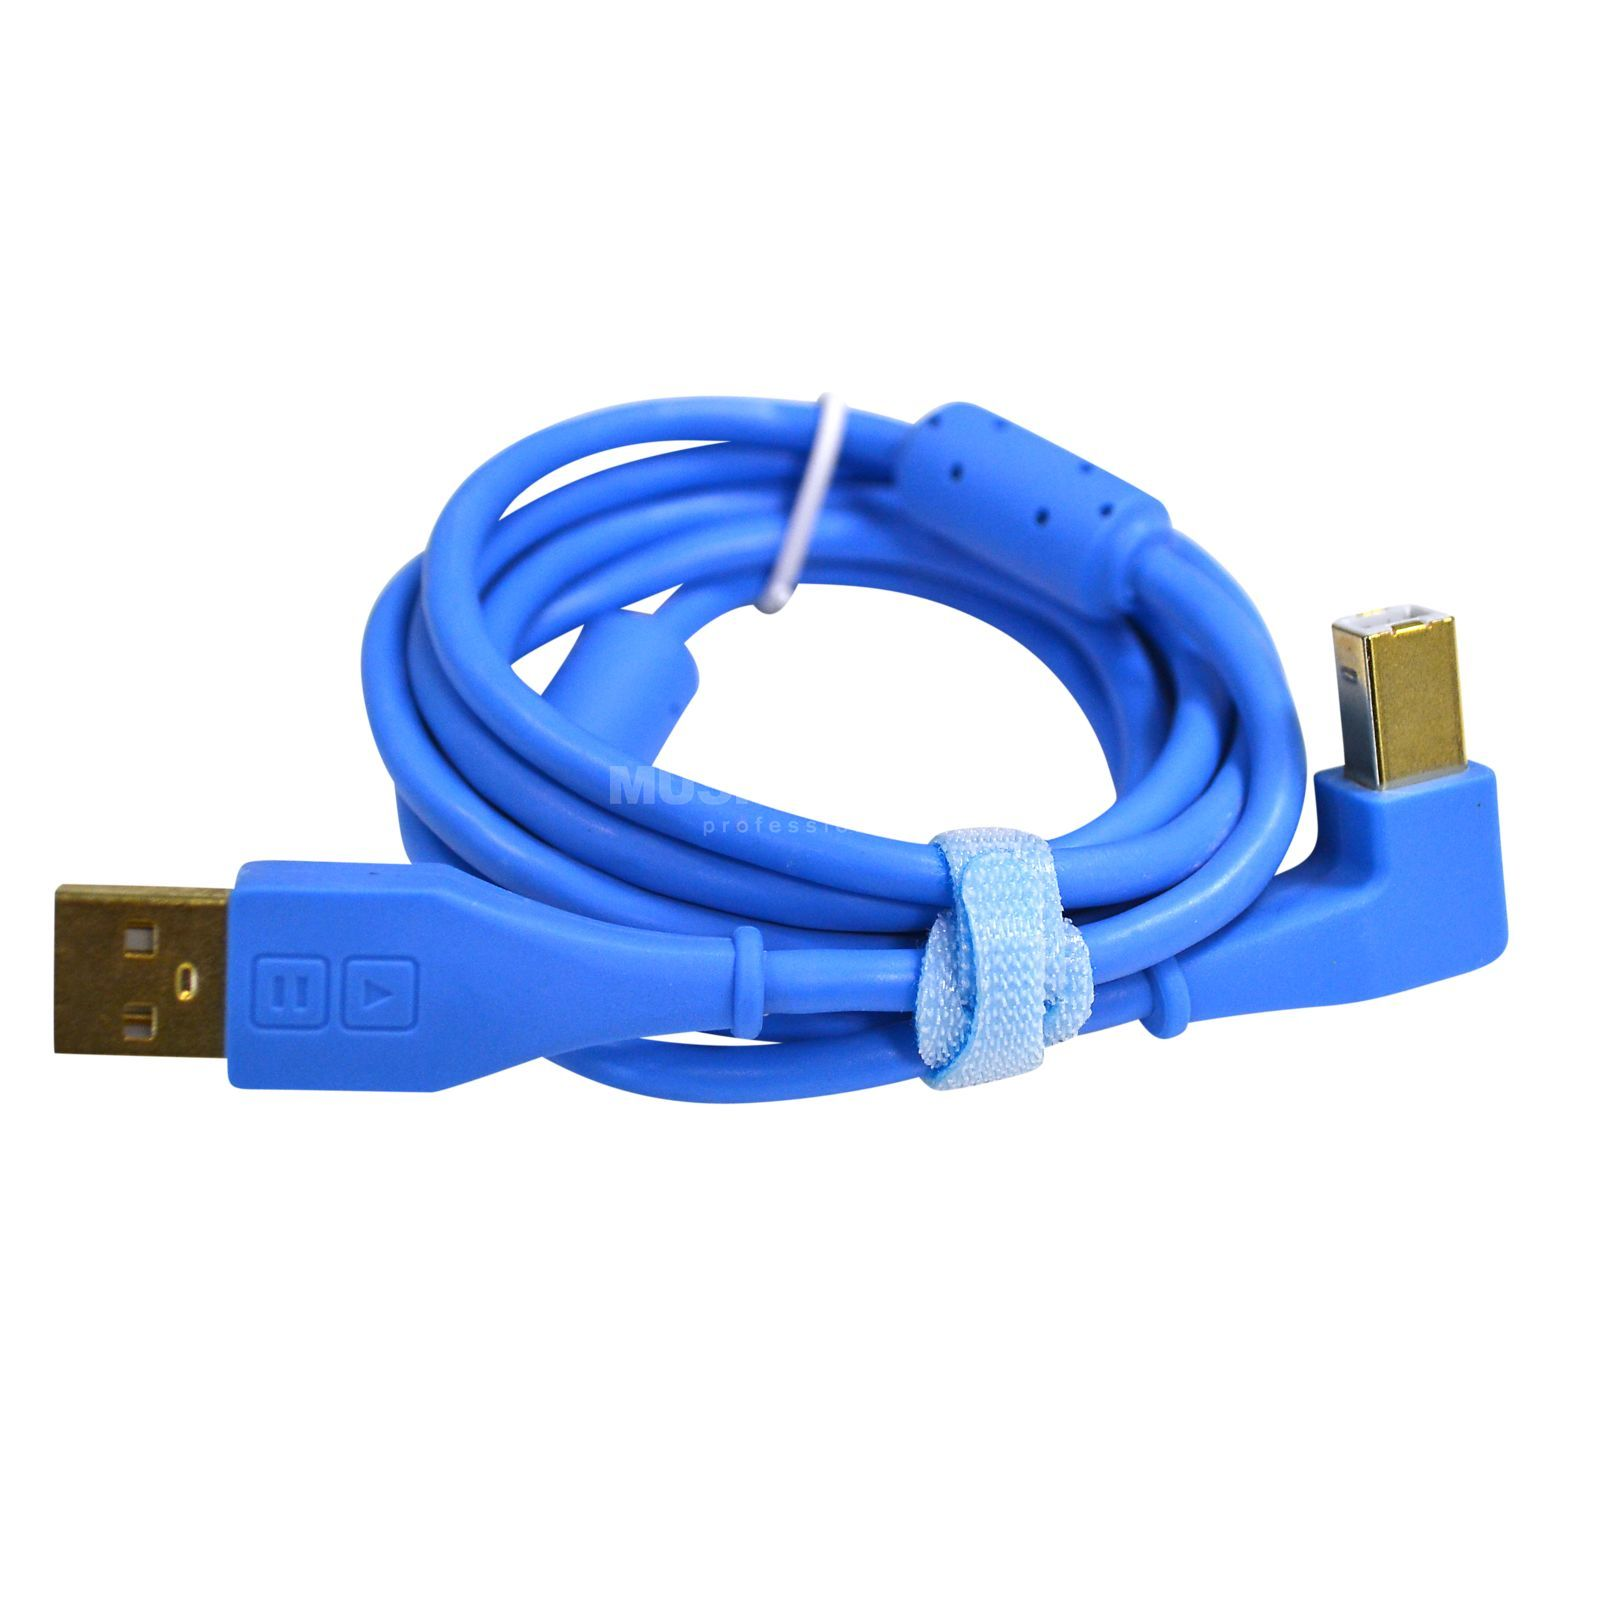 DJ TECHTOOLS DJTT USB Chroma Cable Blue 1.5m, angled Product Image